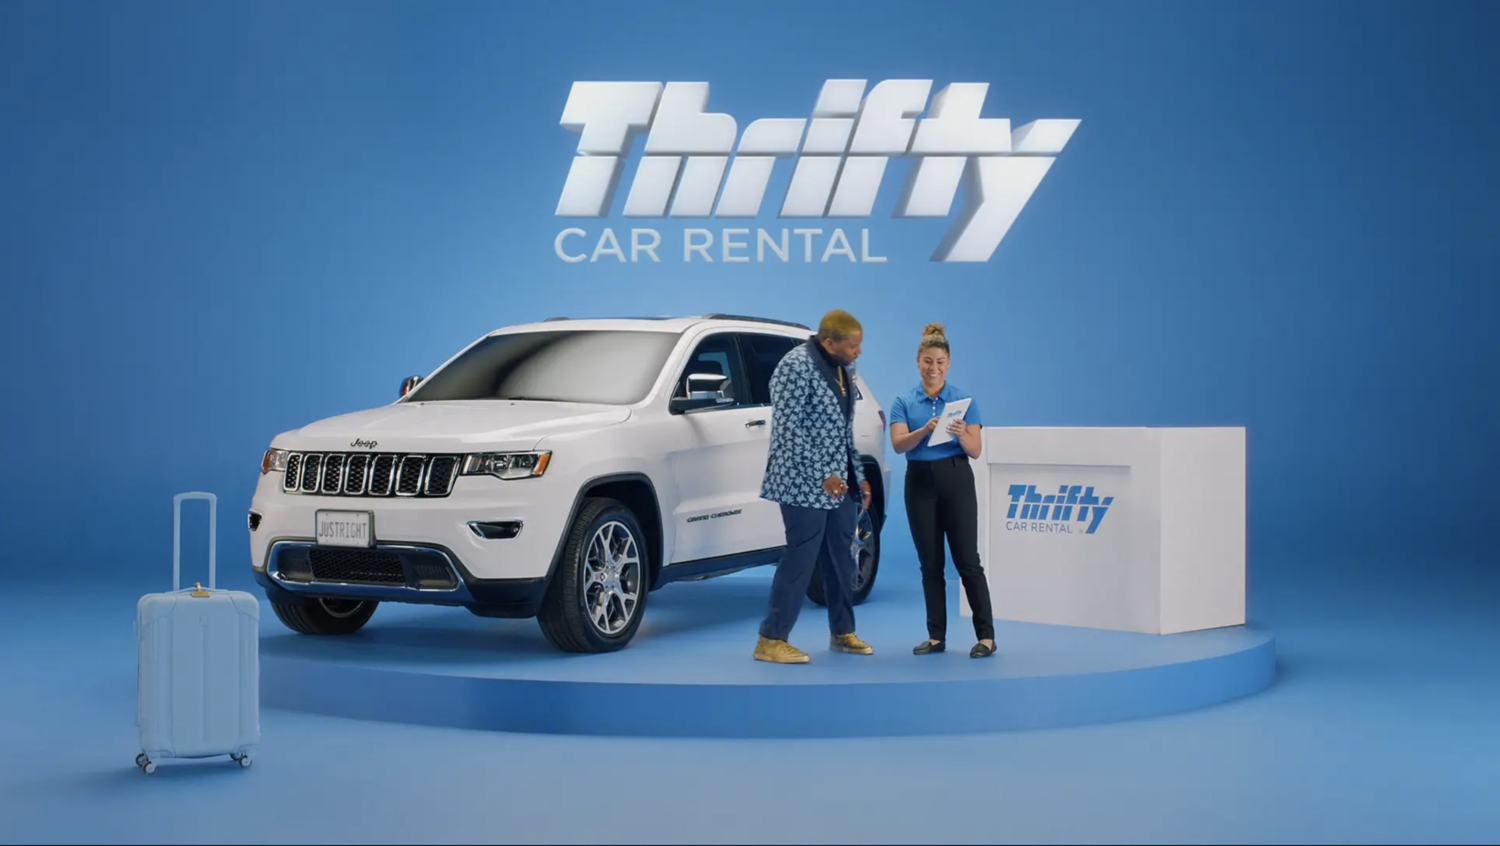 Thrifty Car Rentals >> Thrifty Car Rental Goldilocks Aaron Platt